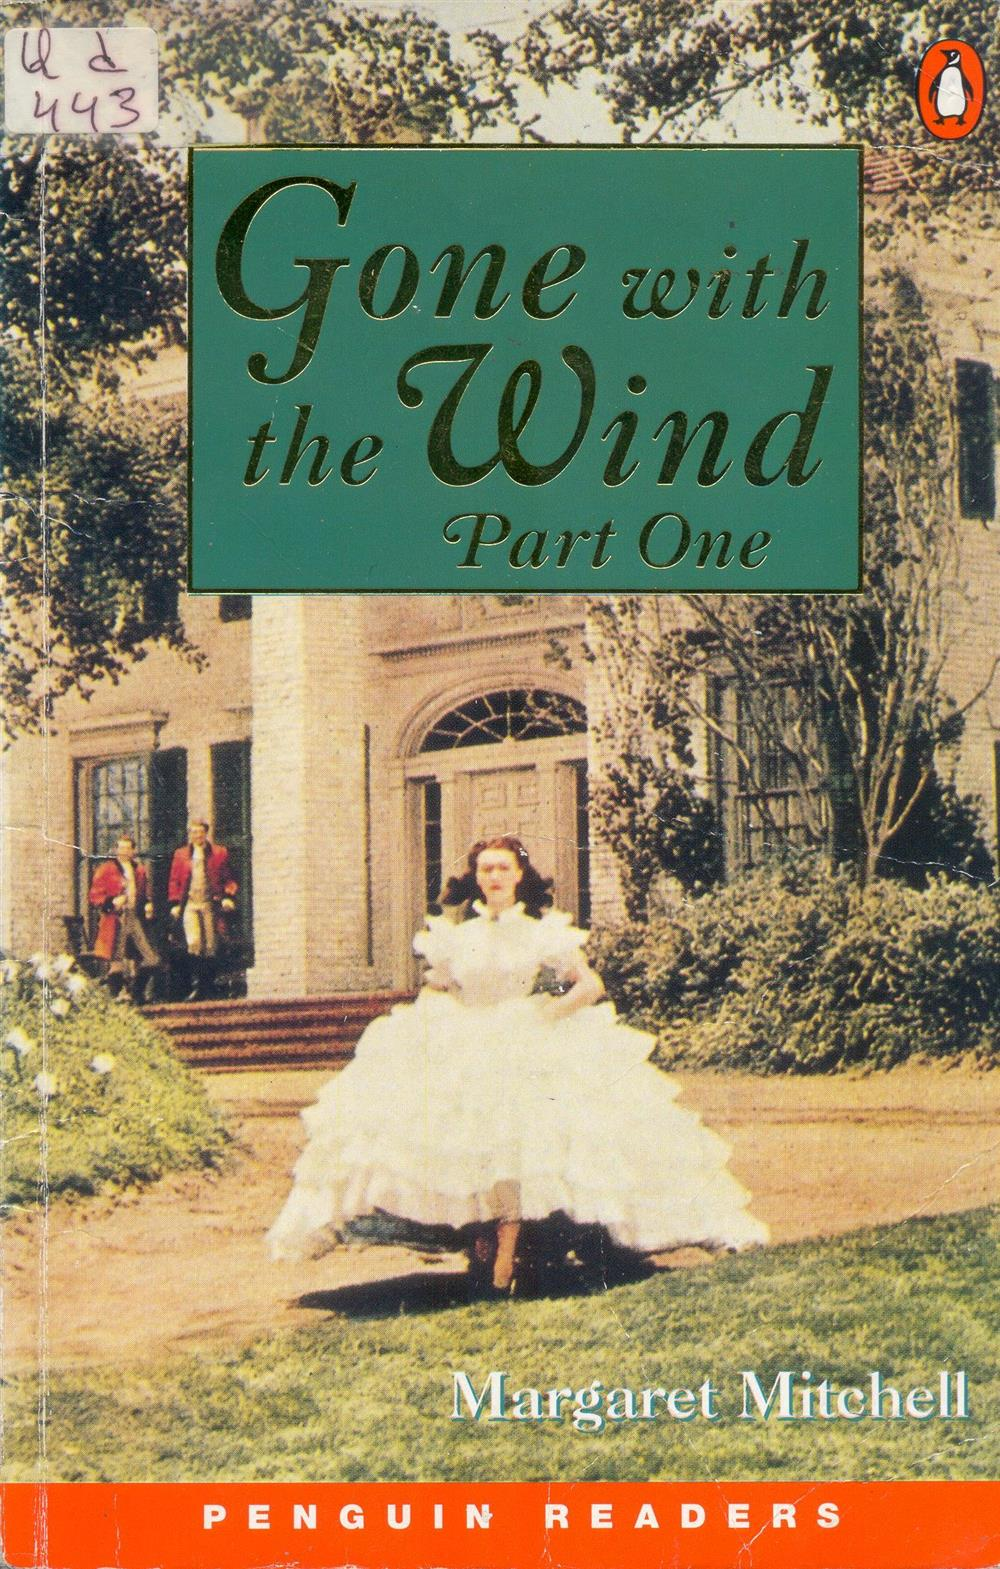 Gone with the wind 001.jpg